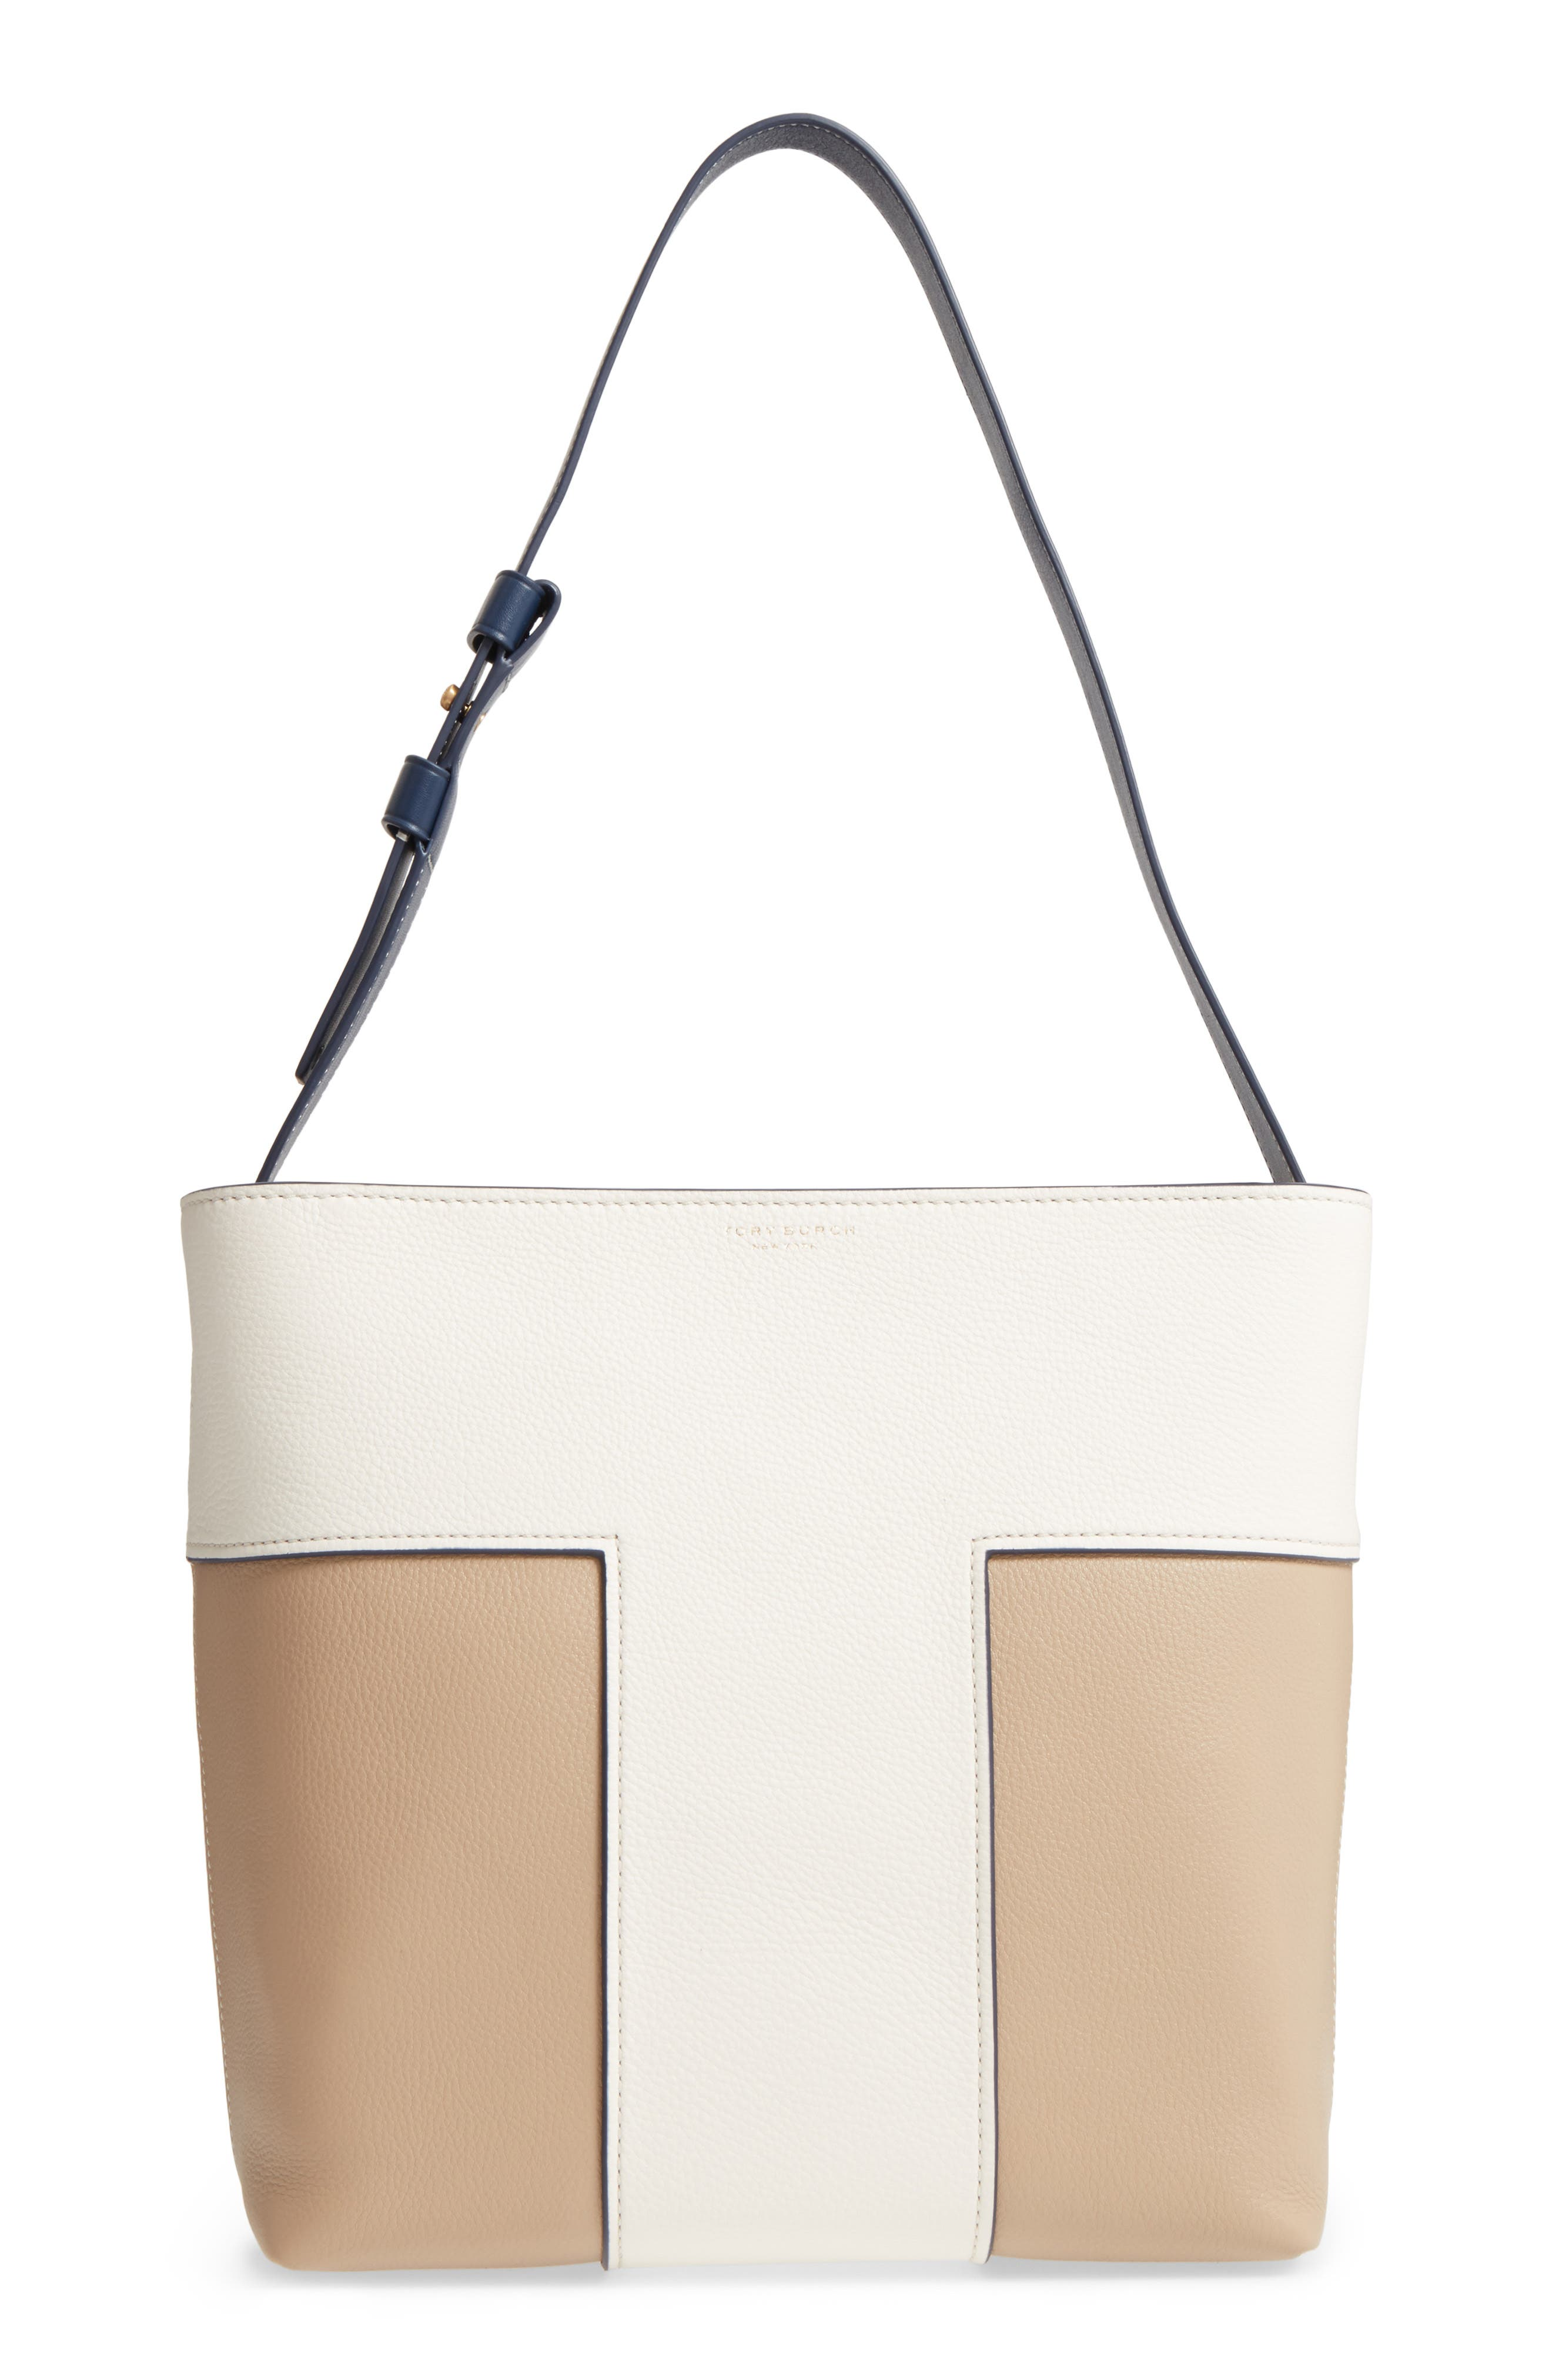 Alternate Image 1 Selected - Tory Burch Block-T Bicolor Pebbled Leather Hobo